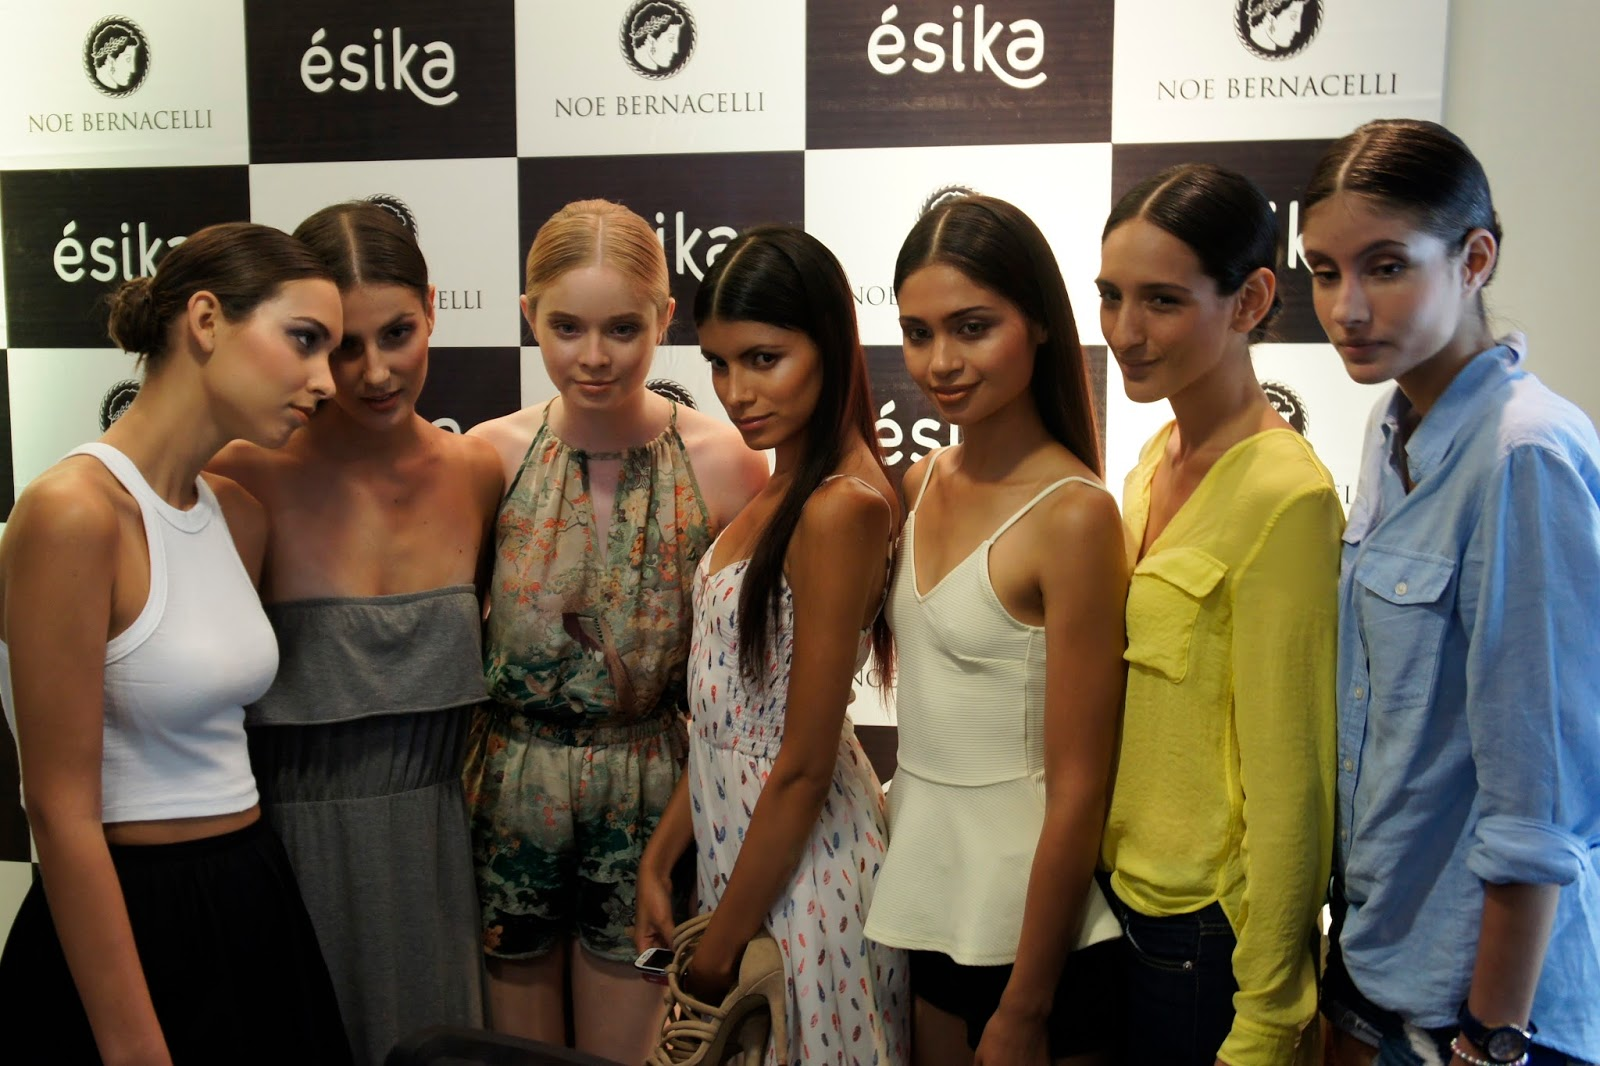 Noe Bernacelli - 727 Collection - Backstage - modelos